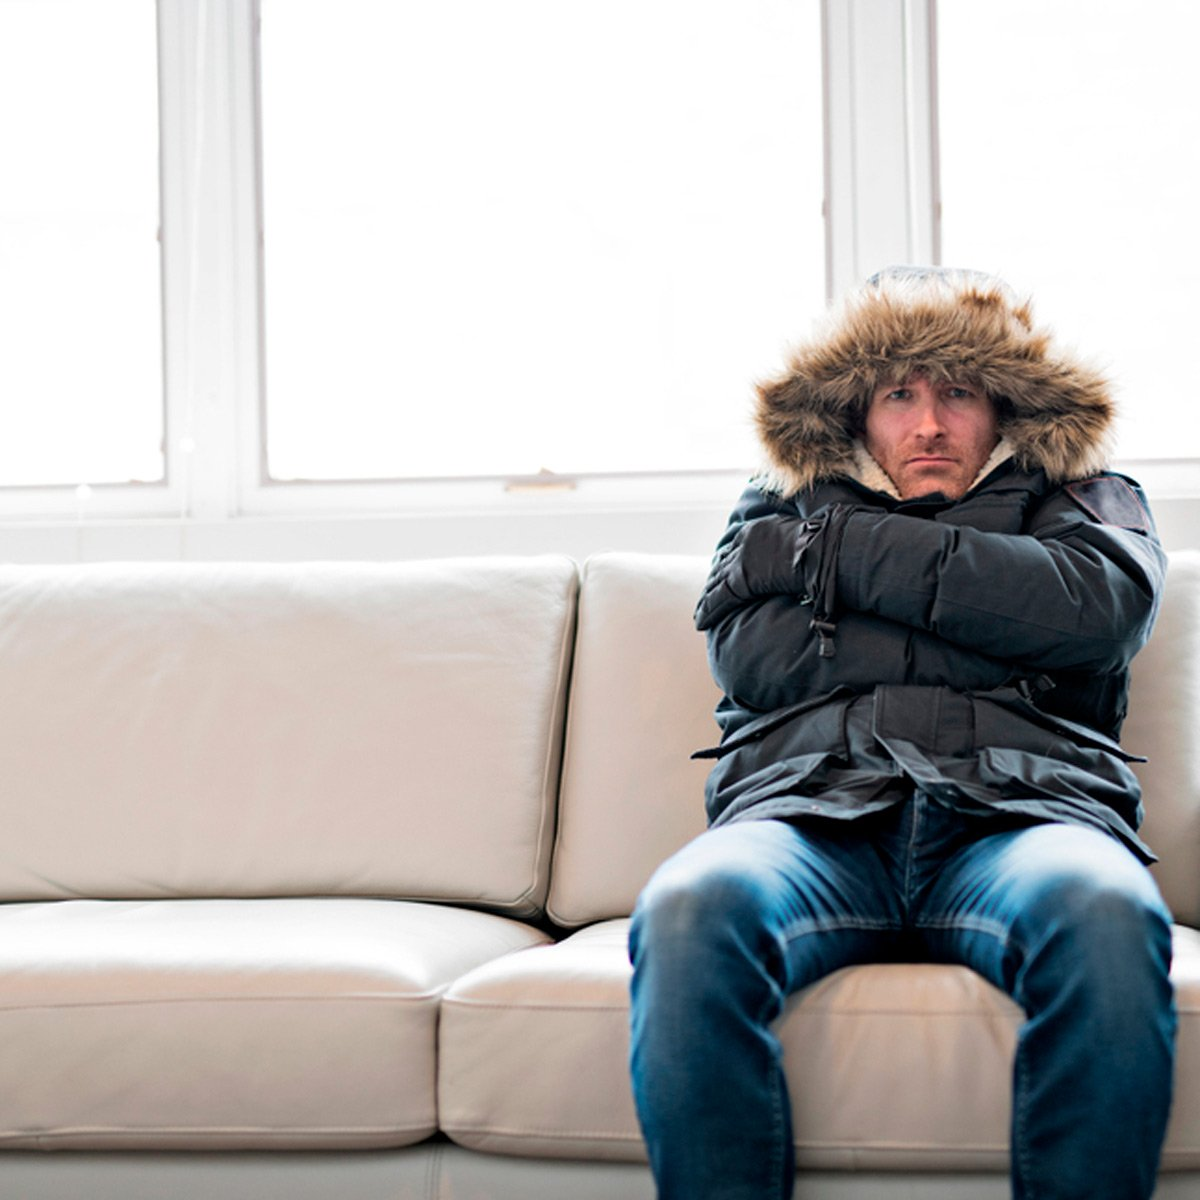 16 Ways to Warm Up a Cold Room That Actually Work